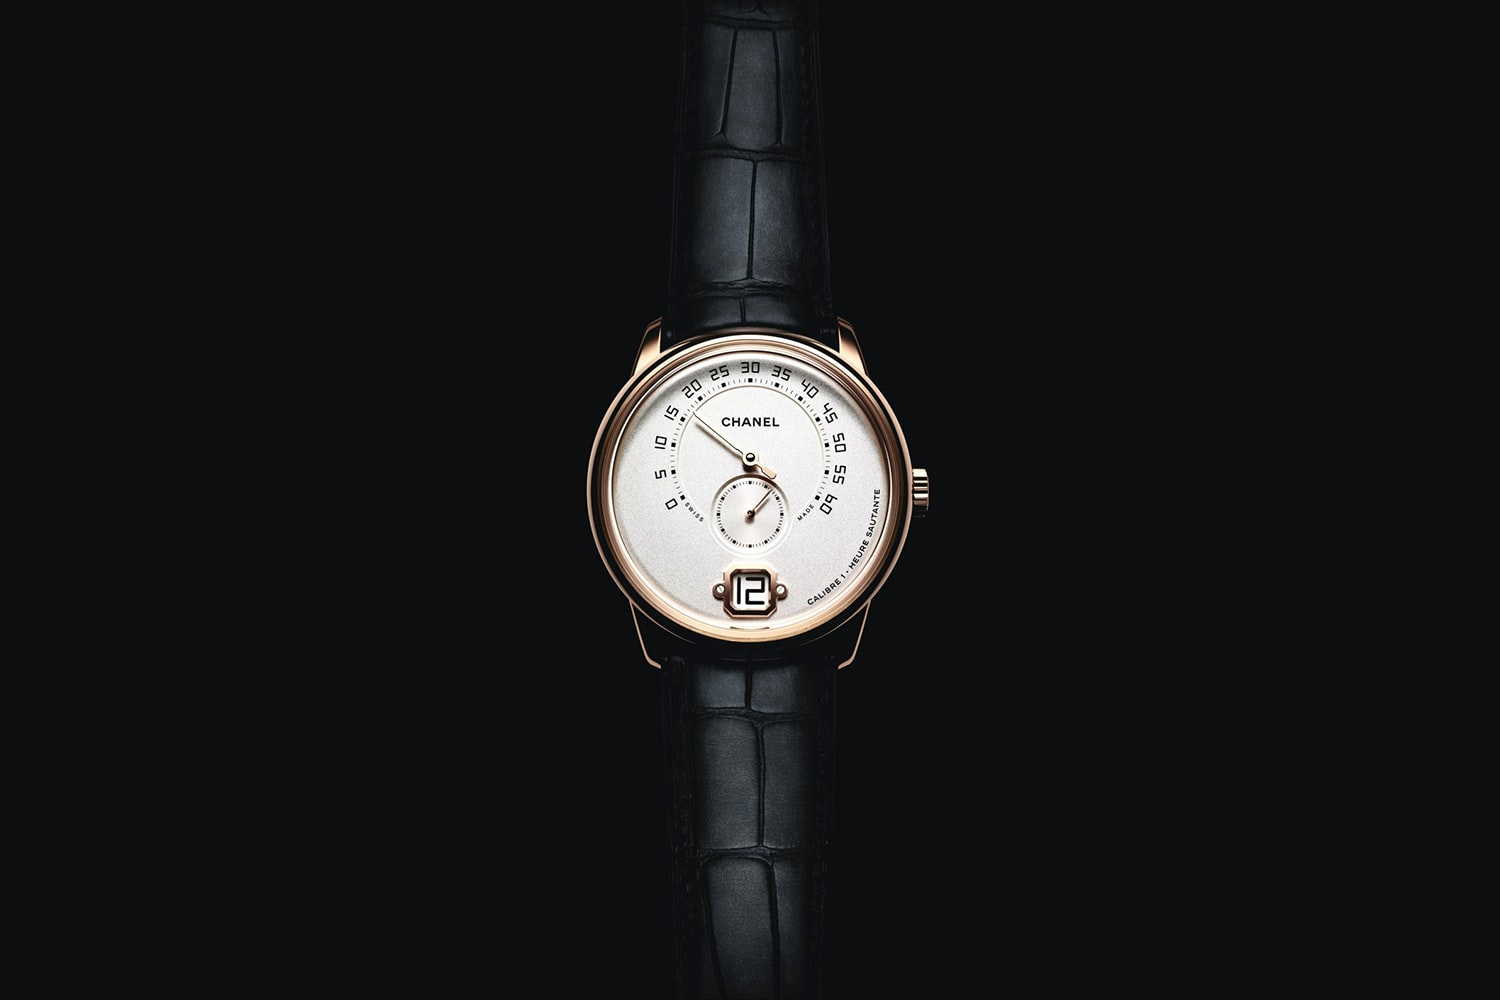 Introducing: The Monsieur de Chanel: Chanel's First Dedicated Men's Watch, And It's Completely In-House And VERY Impressive